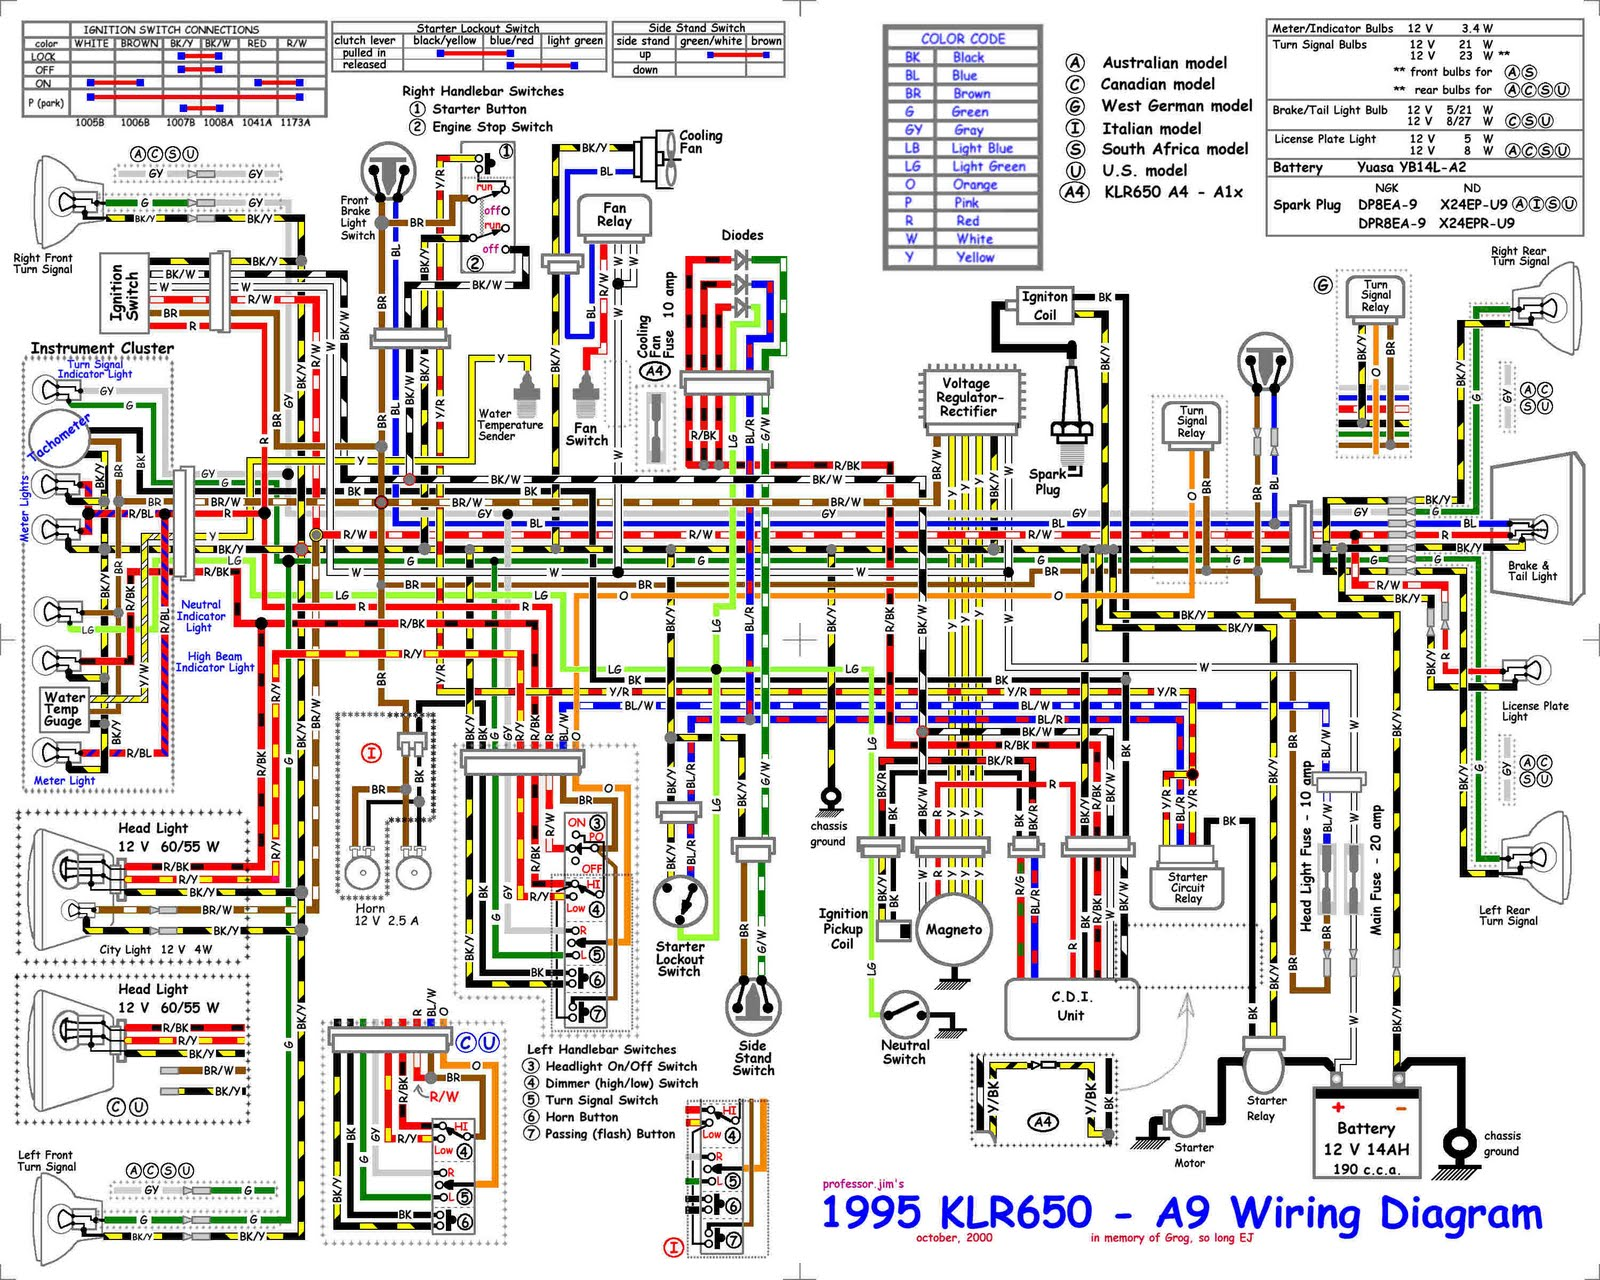 1974 monte carlo wiring diagram free auto wiring diagram 1974 chevrolet monte carlo wiring diagram auto wiring diagrams at nearapp.co